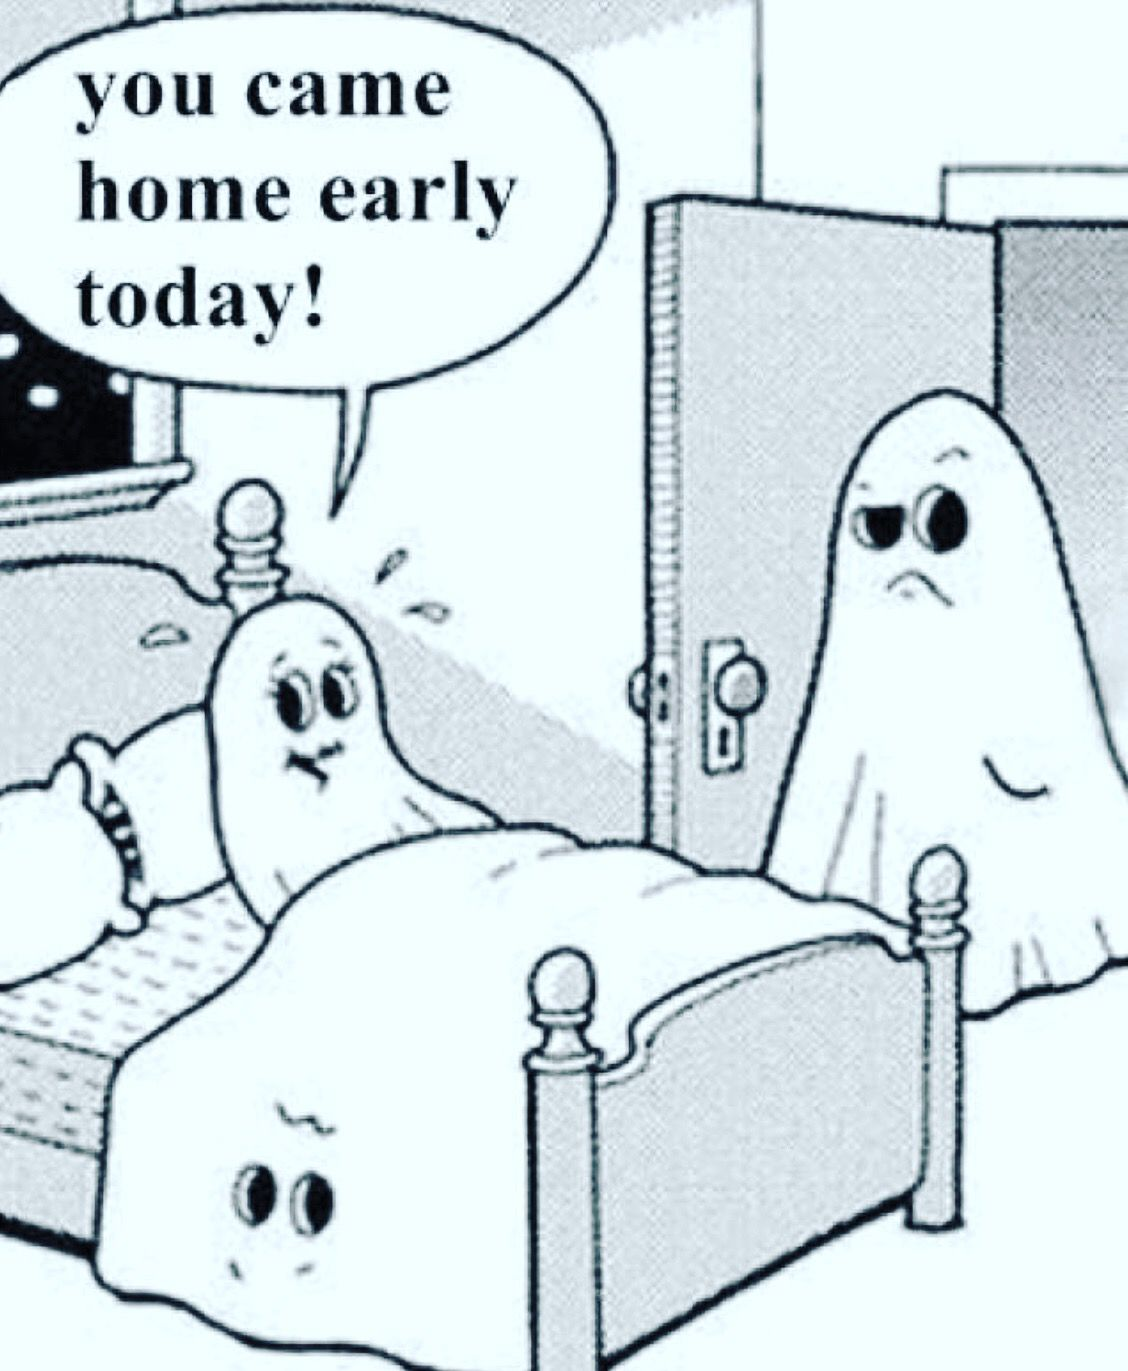 Pin by Spooky_one1031halloweenhoarder on Halloween Humor